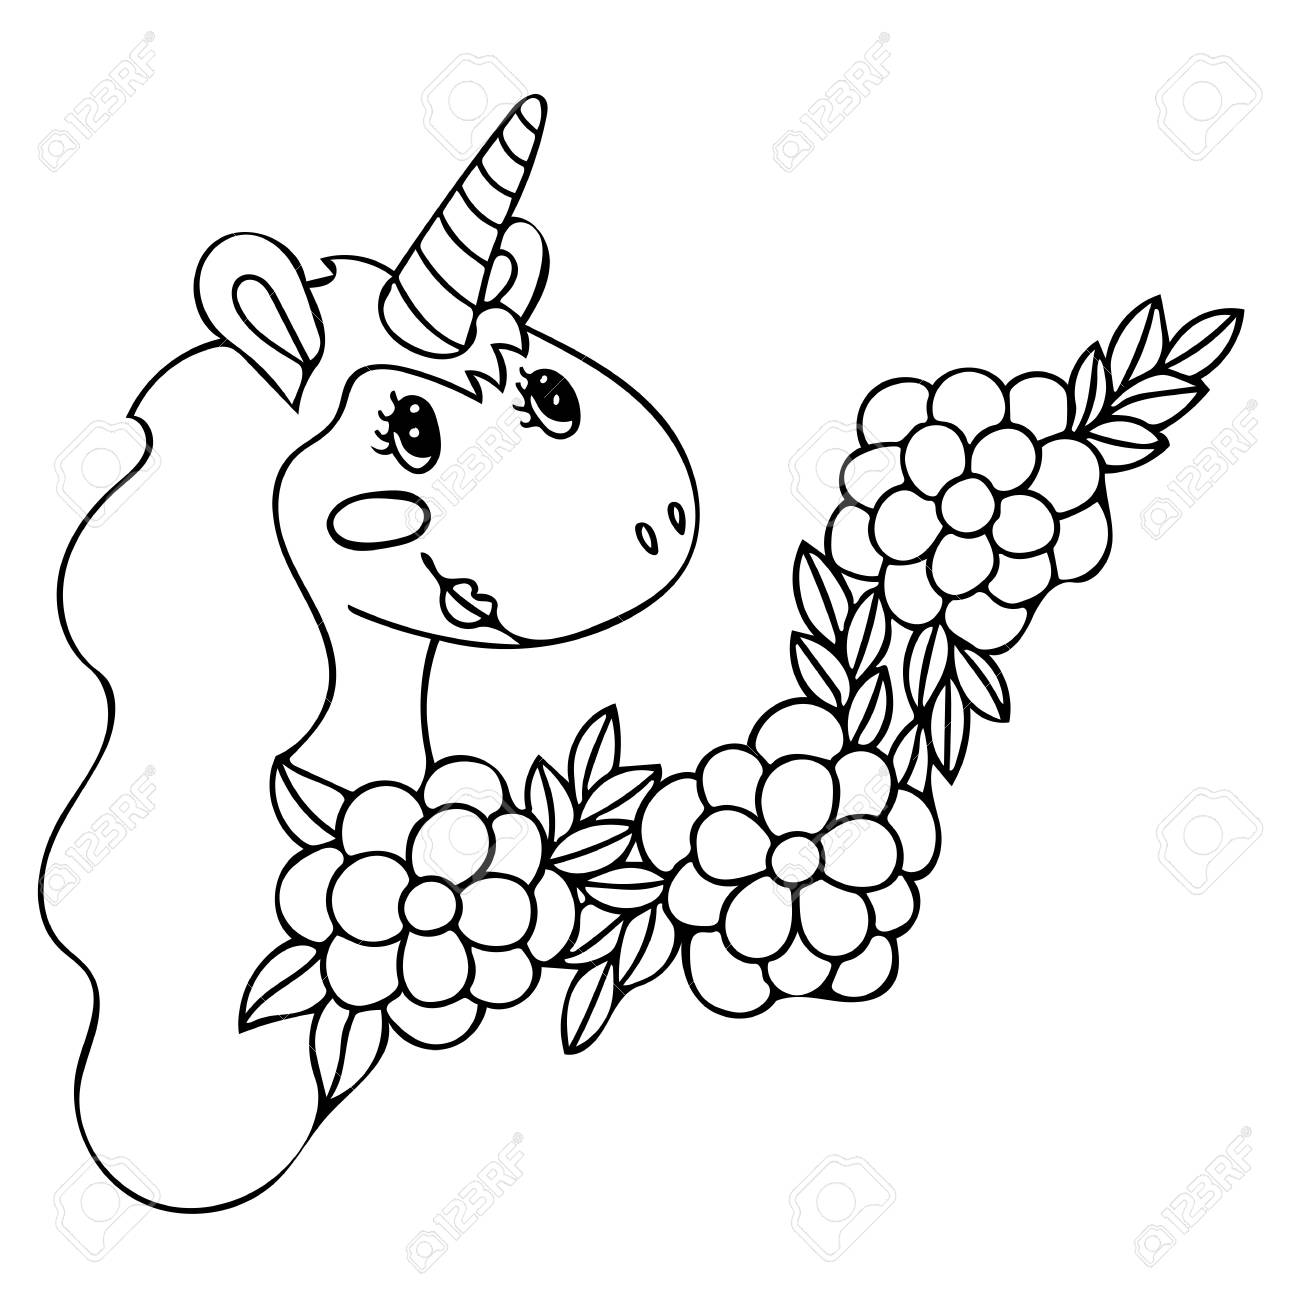 - Unicorn For Coloring Book. Magical Anima For Coloring Book Pages